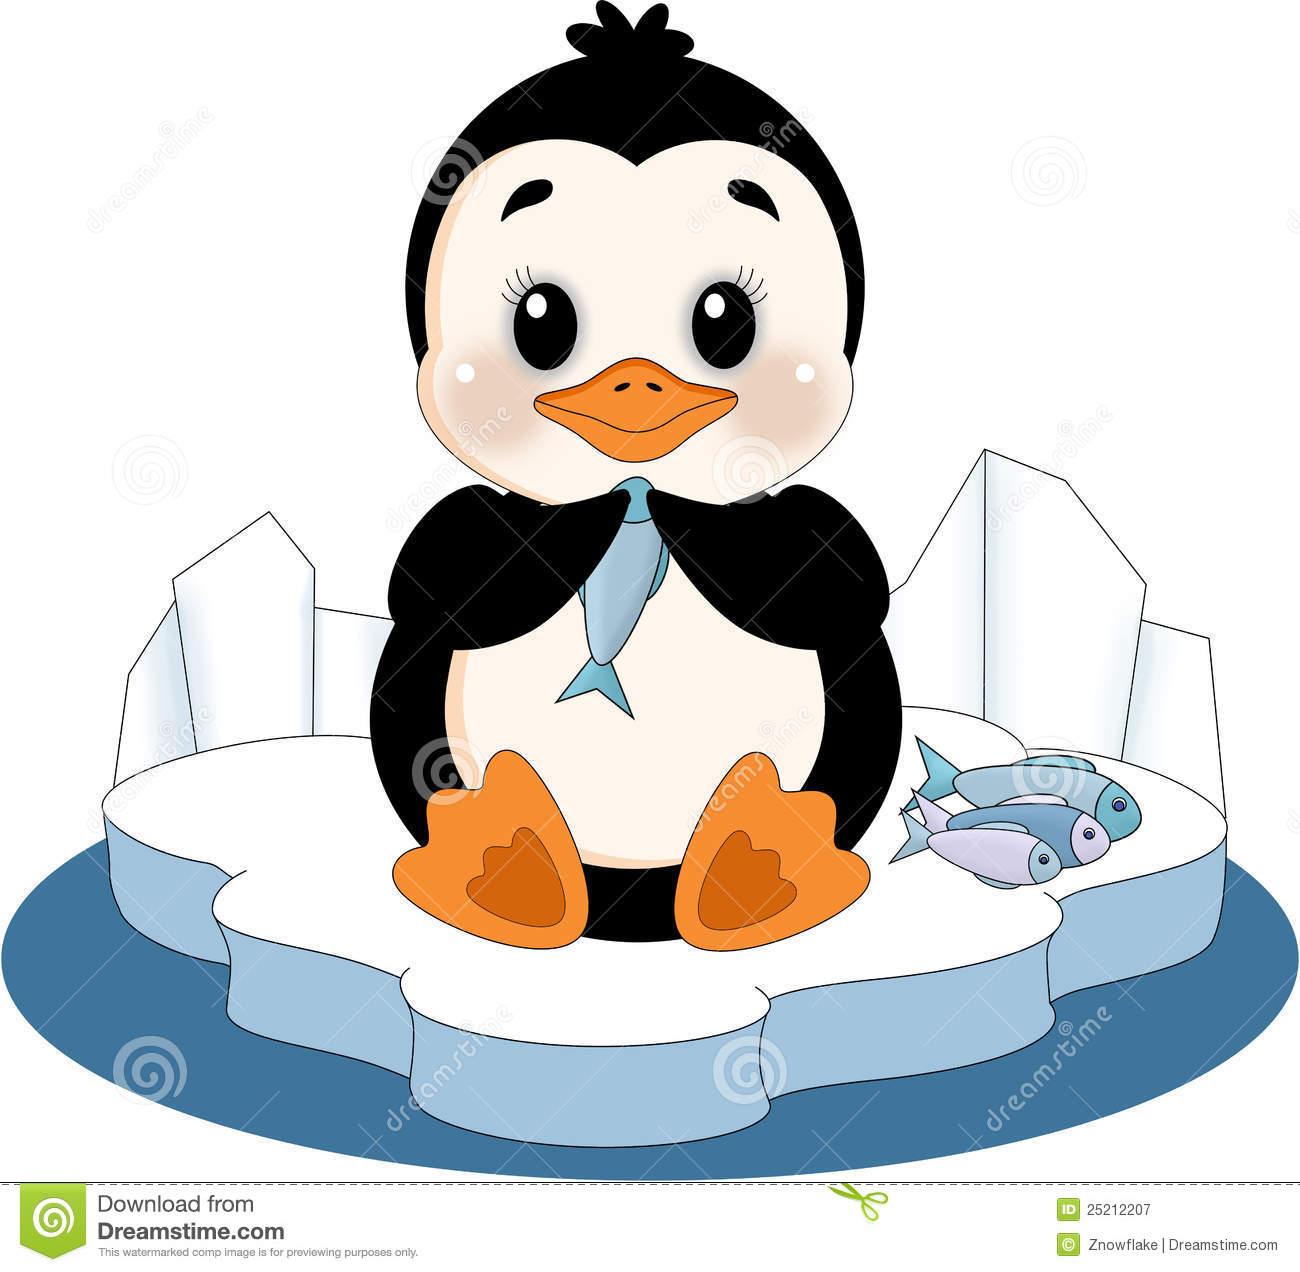 Penguin on ice floe royalty free stock photography image for Penguin and fish